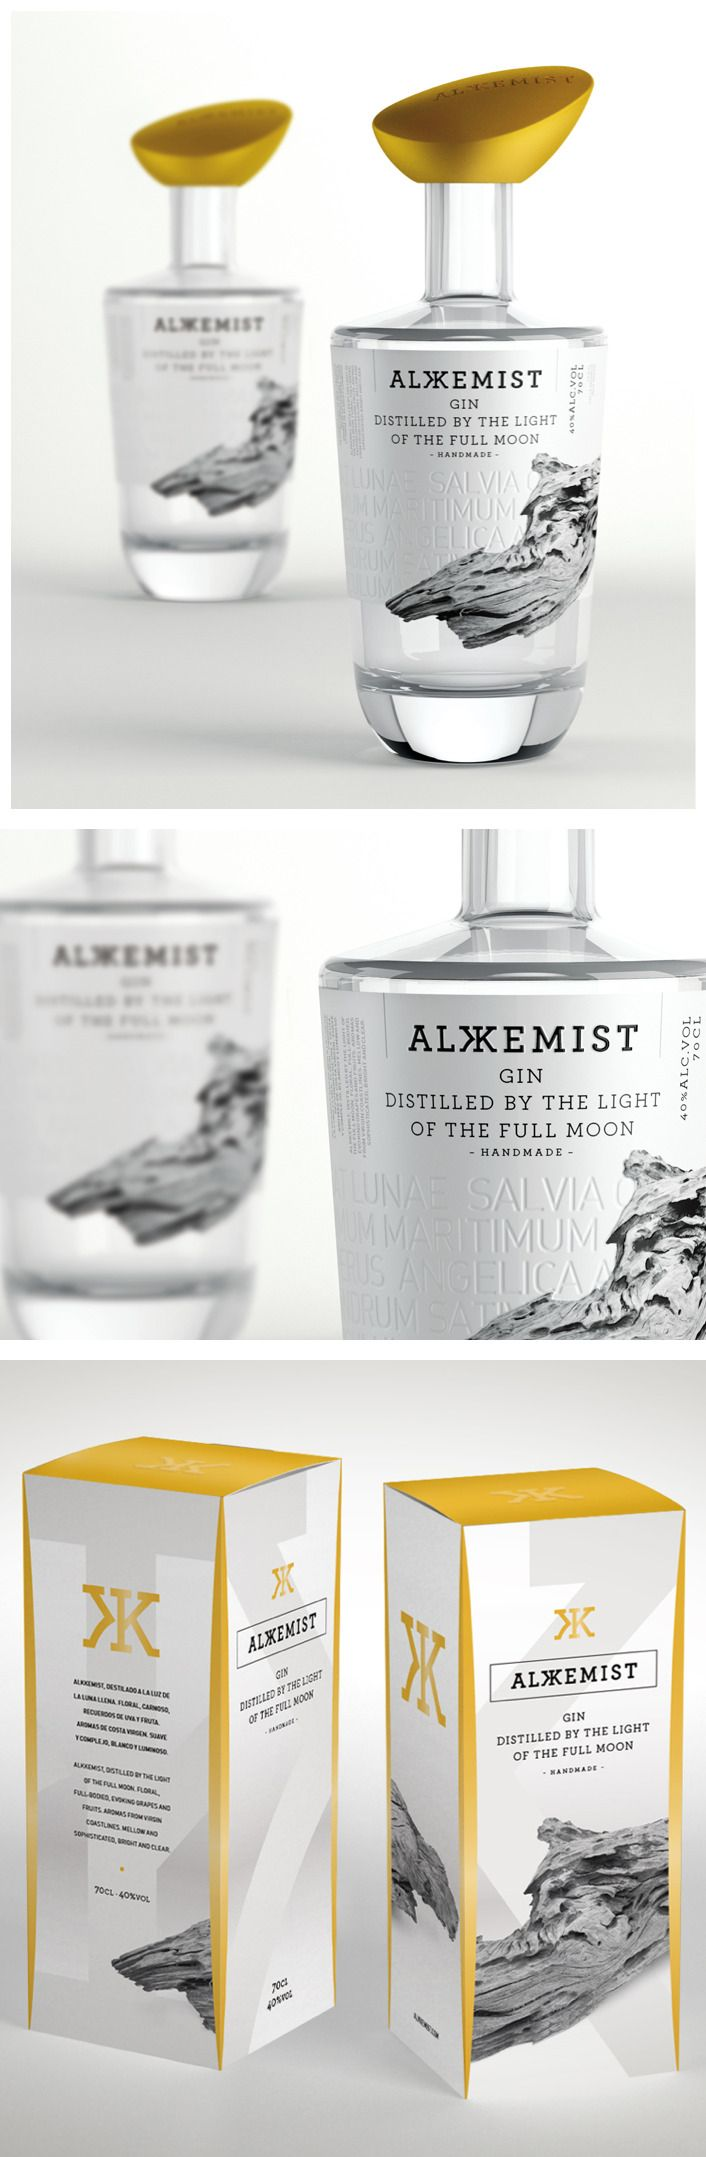 Expanded ALKKEMIST Gin pin PD